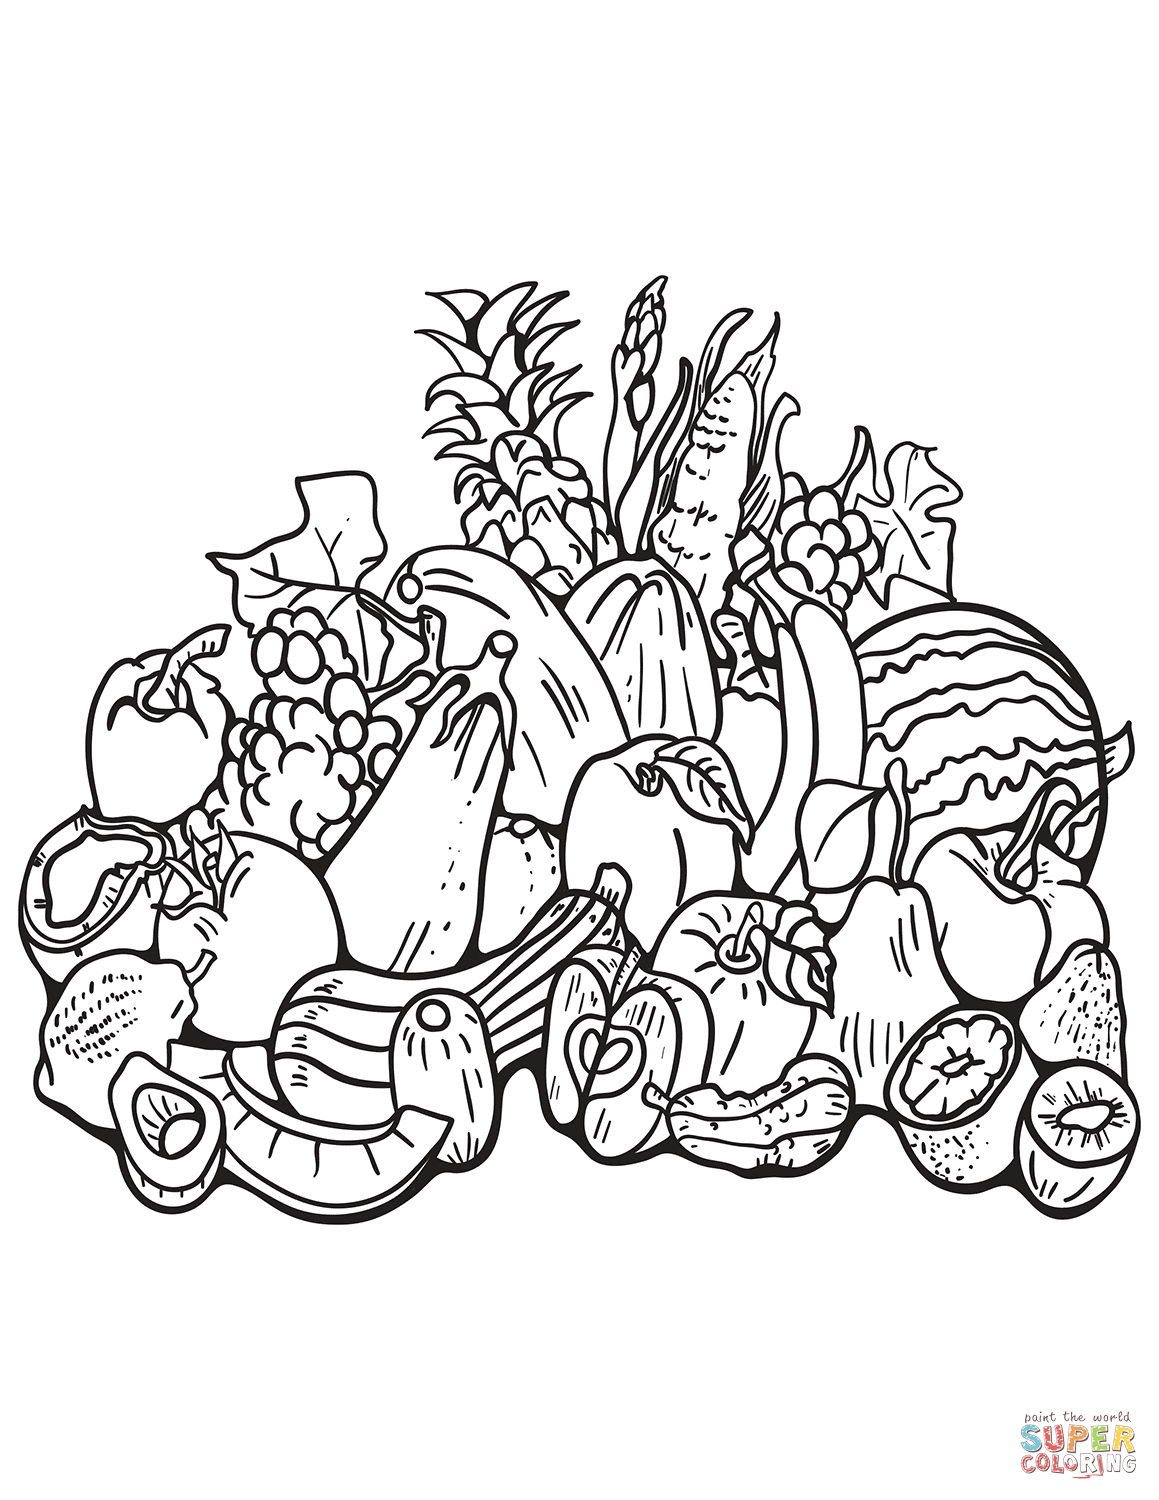 harvest colouring sheets harvest coloring pages best coloring pages for kids harvest sheets colouring 1 1